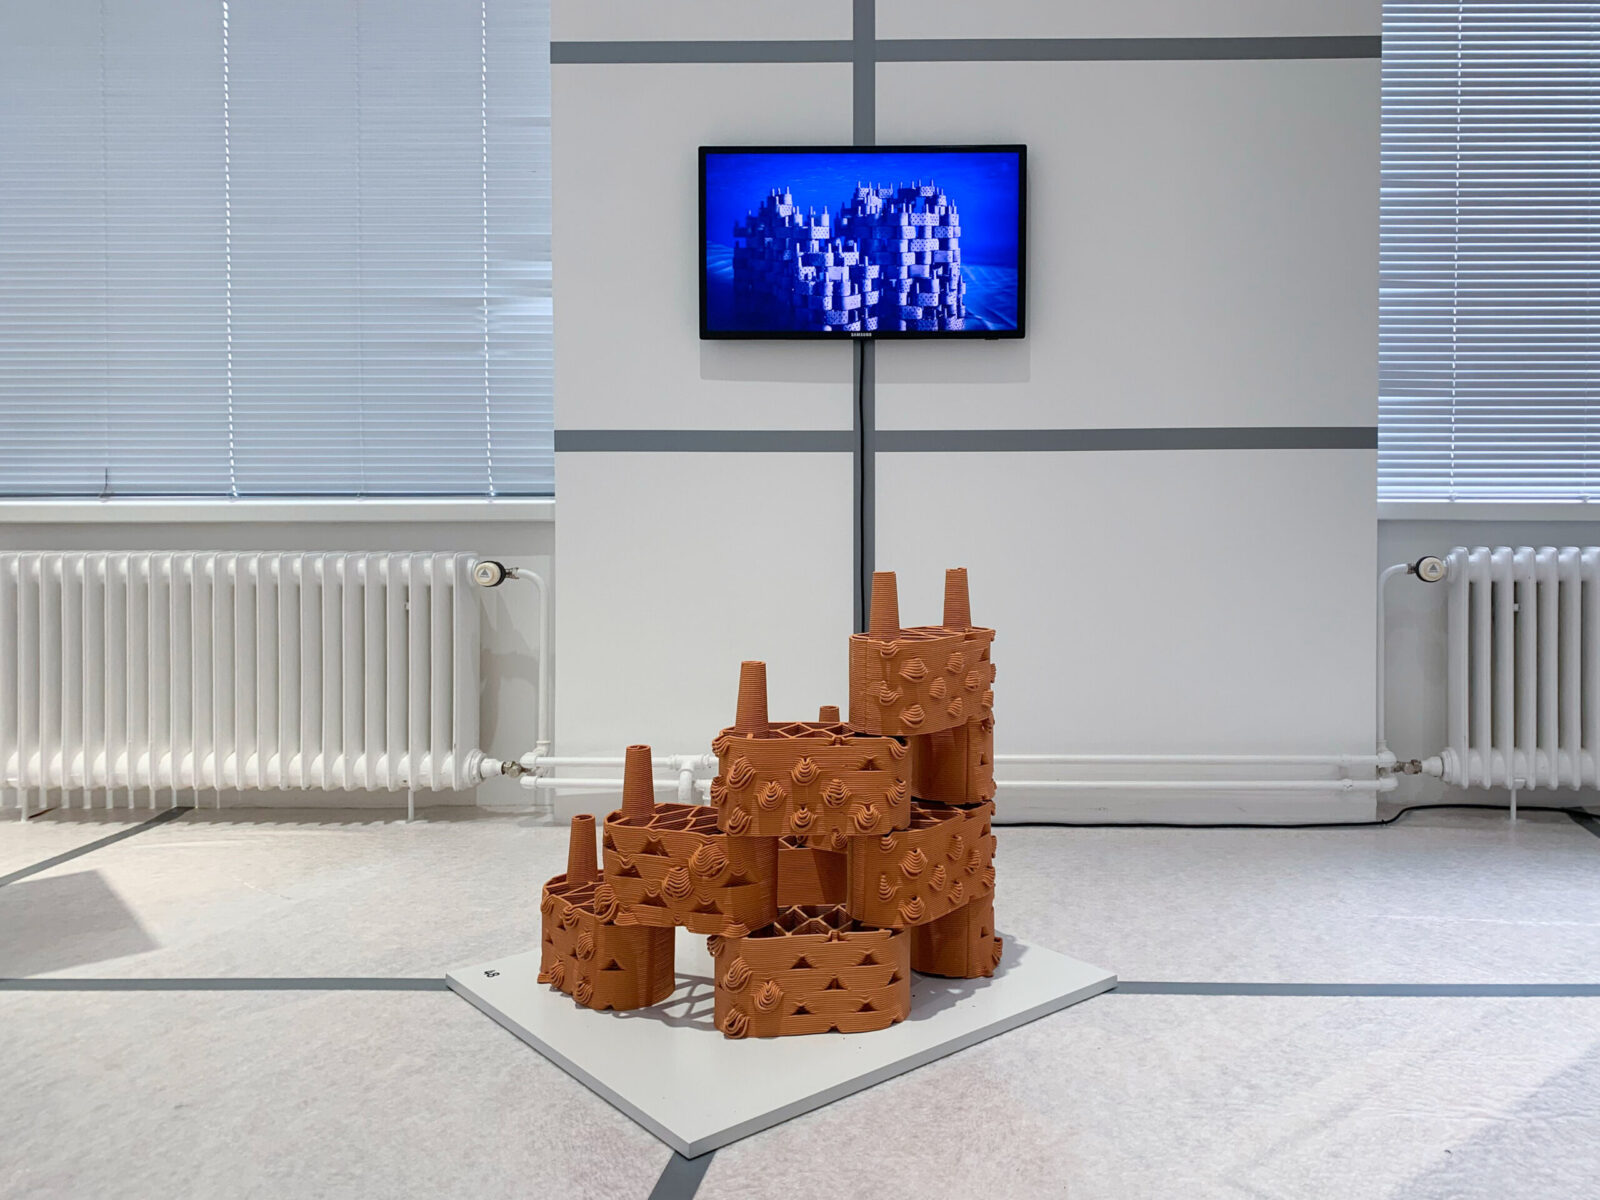 Exhibited at the Gewerbemuseum in Winterthur, some clay bricks and an explicative video show how this interdisciplinary project will help sustain coral reefs in tropical regions. © Marie Griesmar/rrreefs